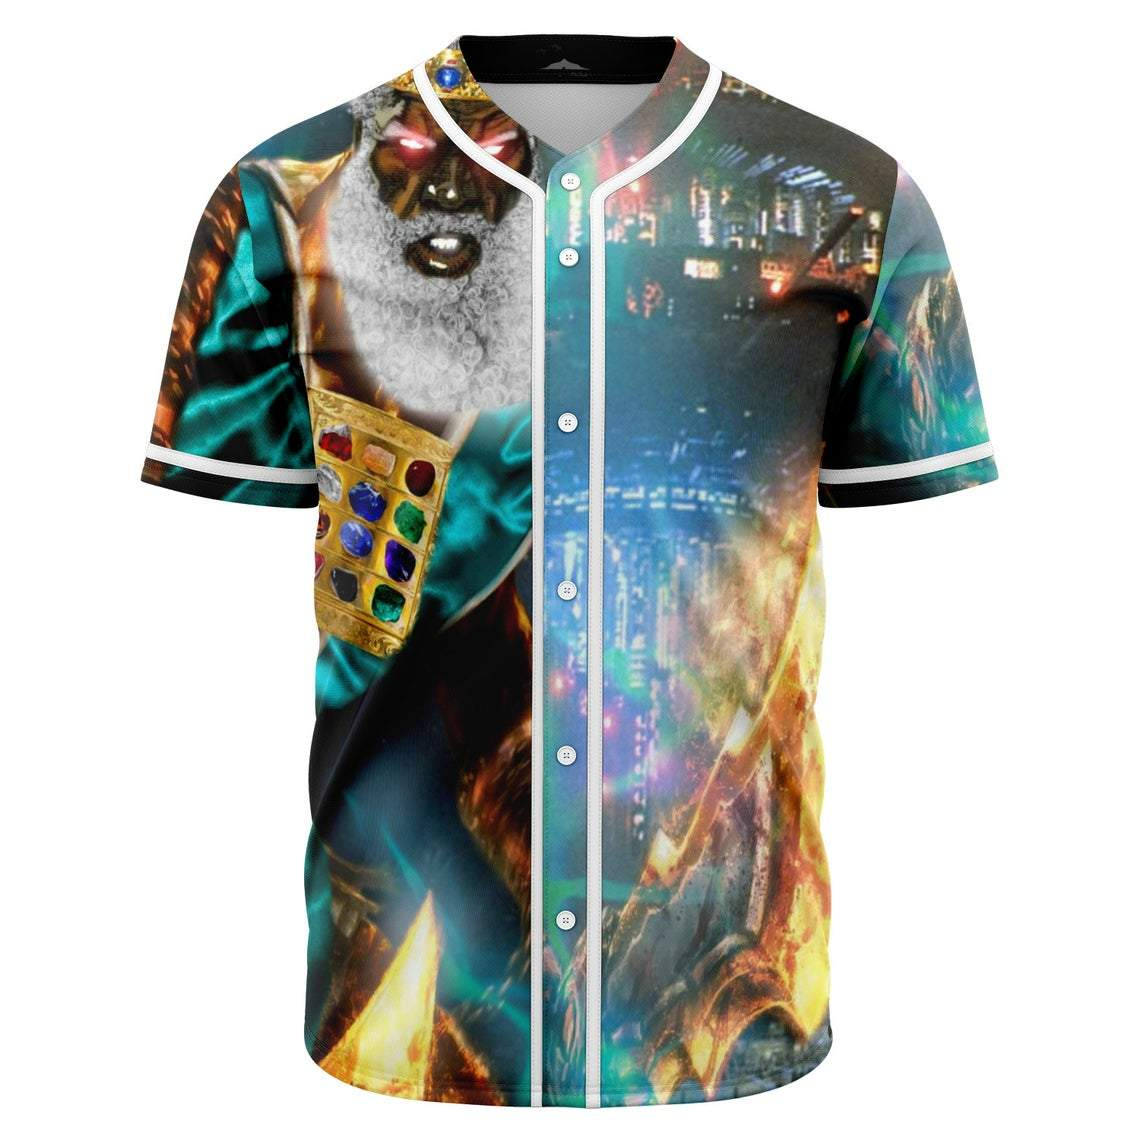 Hebrew Israelite Last Days Baseball Jersey Full Size and Color